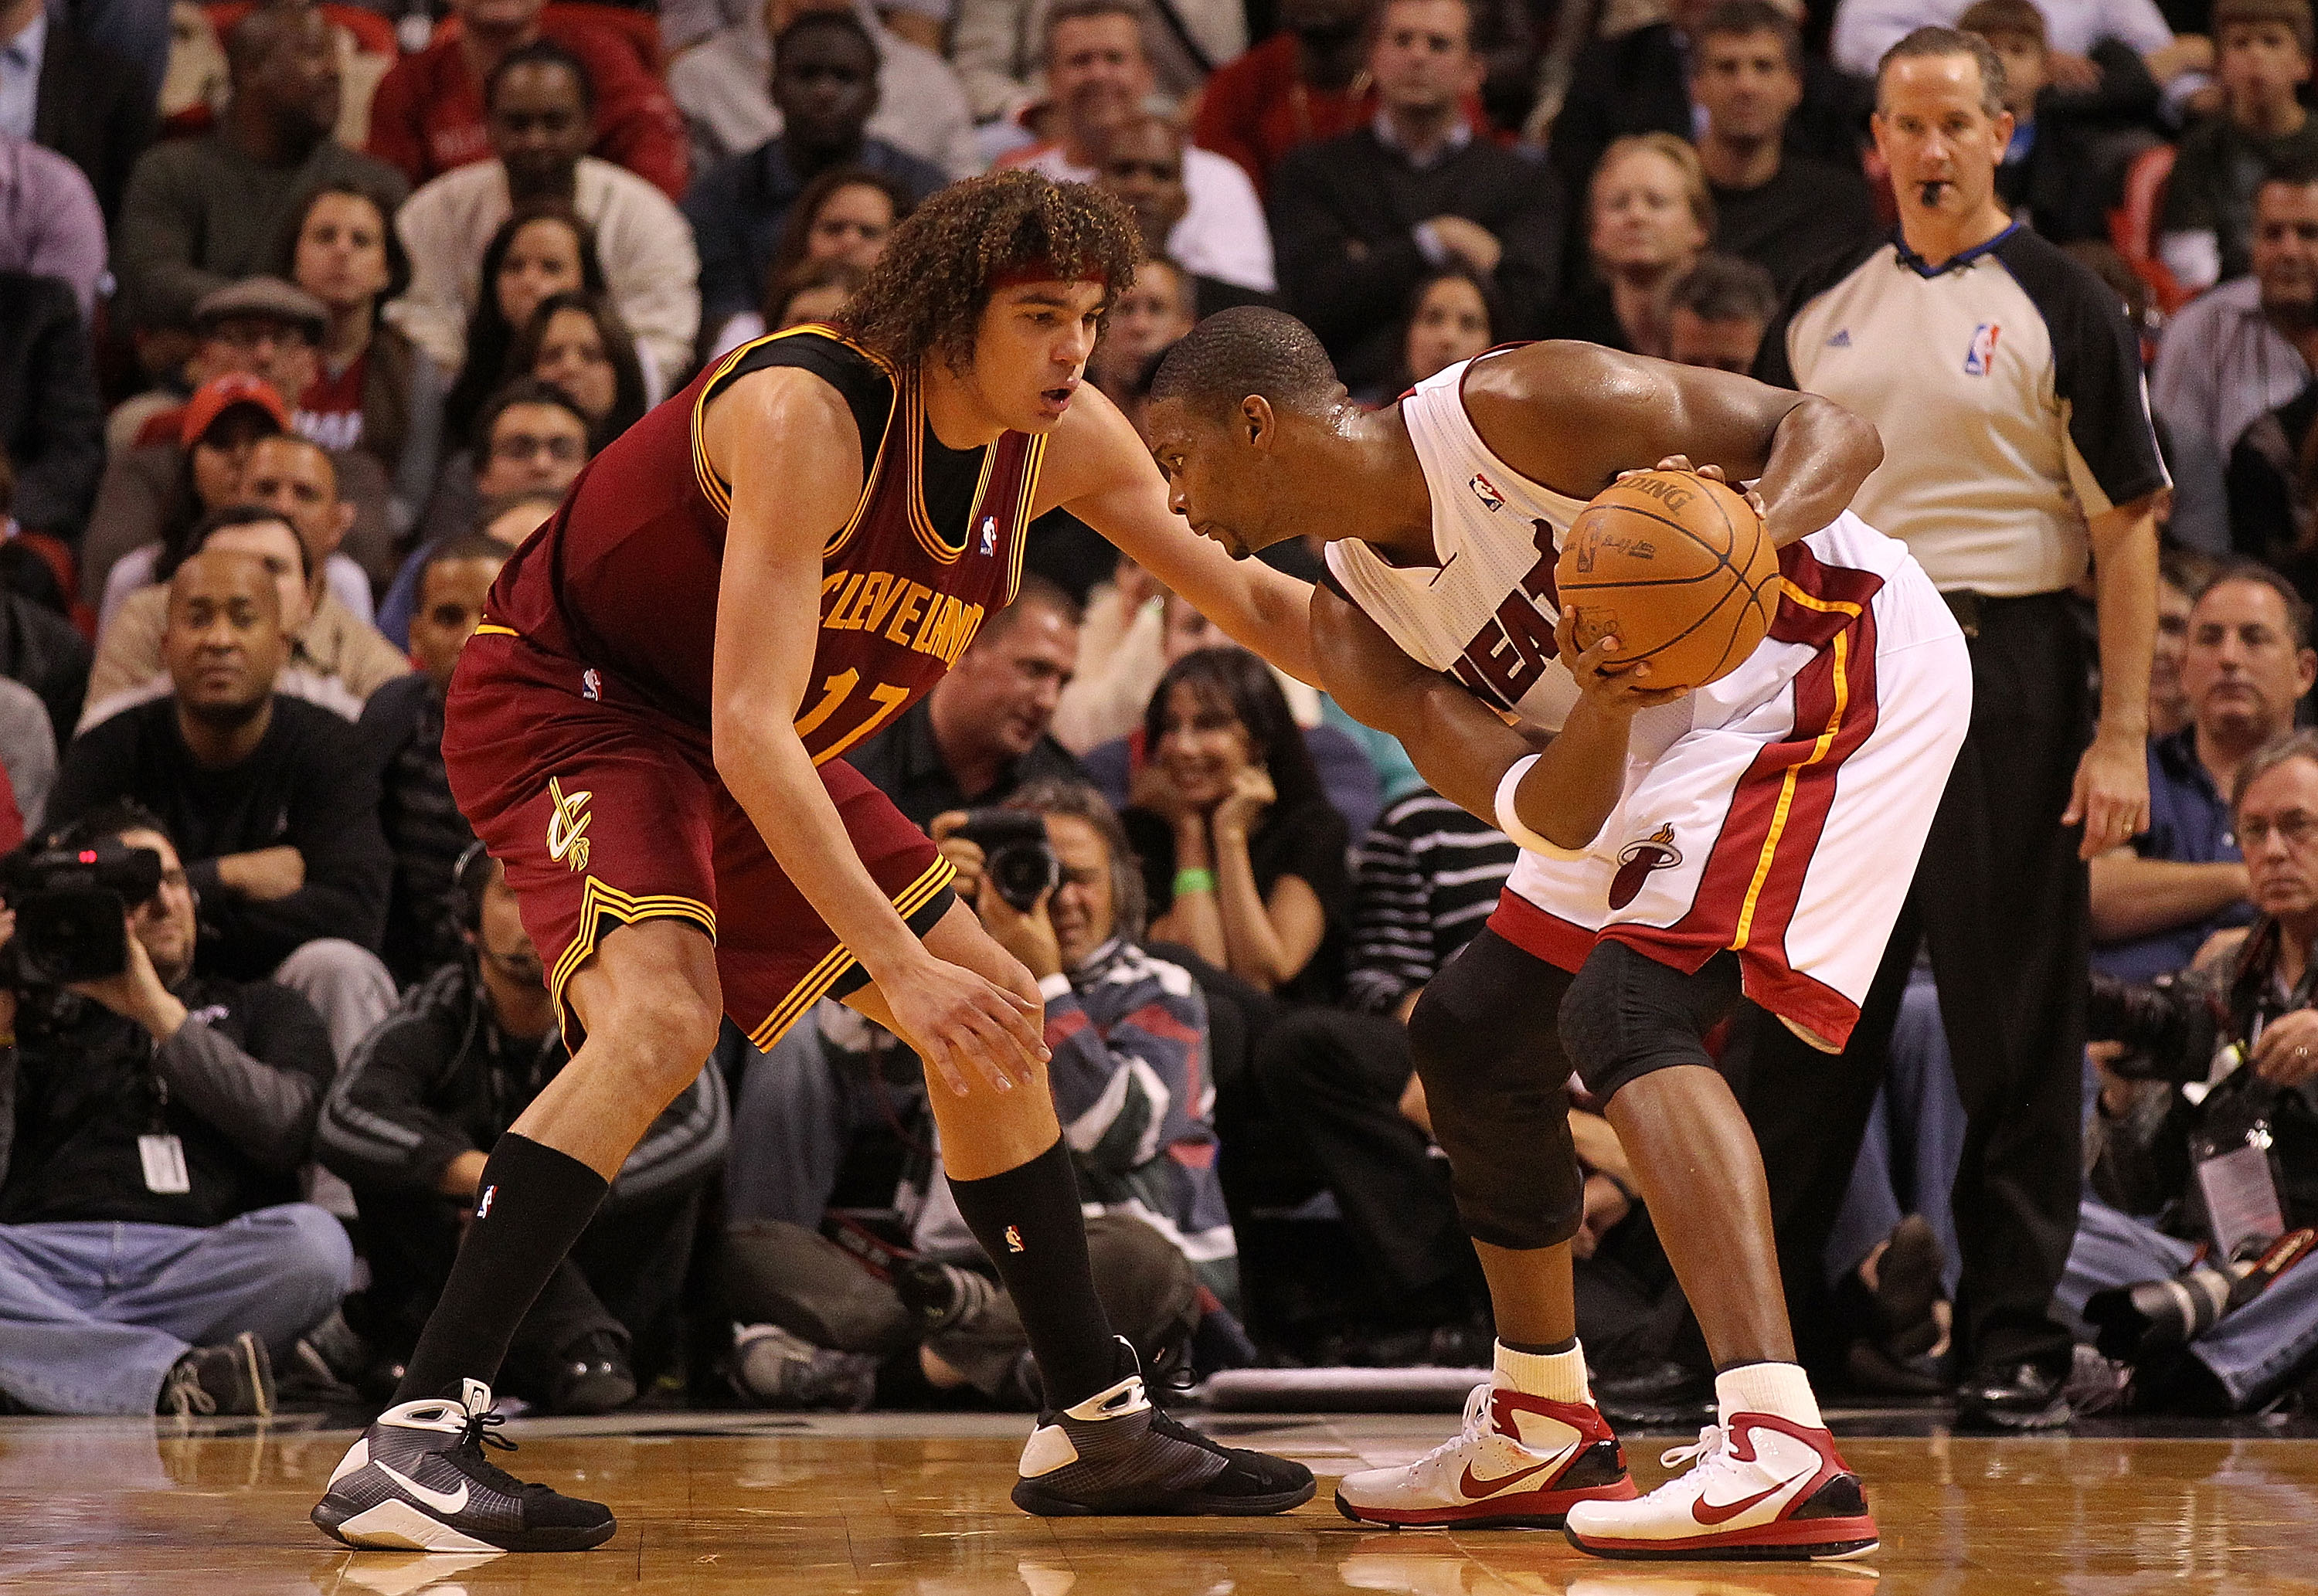 MIAMI, FL - DECEMBER 15: Chris Bosh #1 of the Miami Heat posts up Anderson Varejao #17 of the Cleveland Cavaliers during a game at American Airlines Arena on December 15, 2010 in Miami, Florida. NOTE TO USER: User expressly acknowledges and agrees that, b